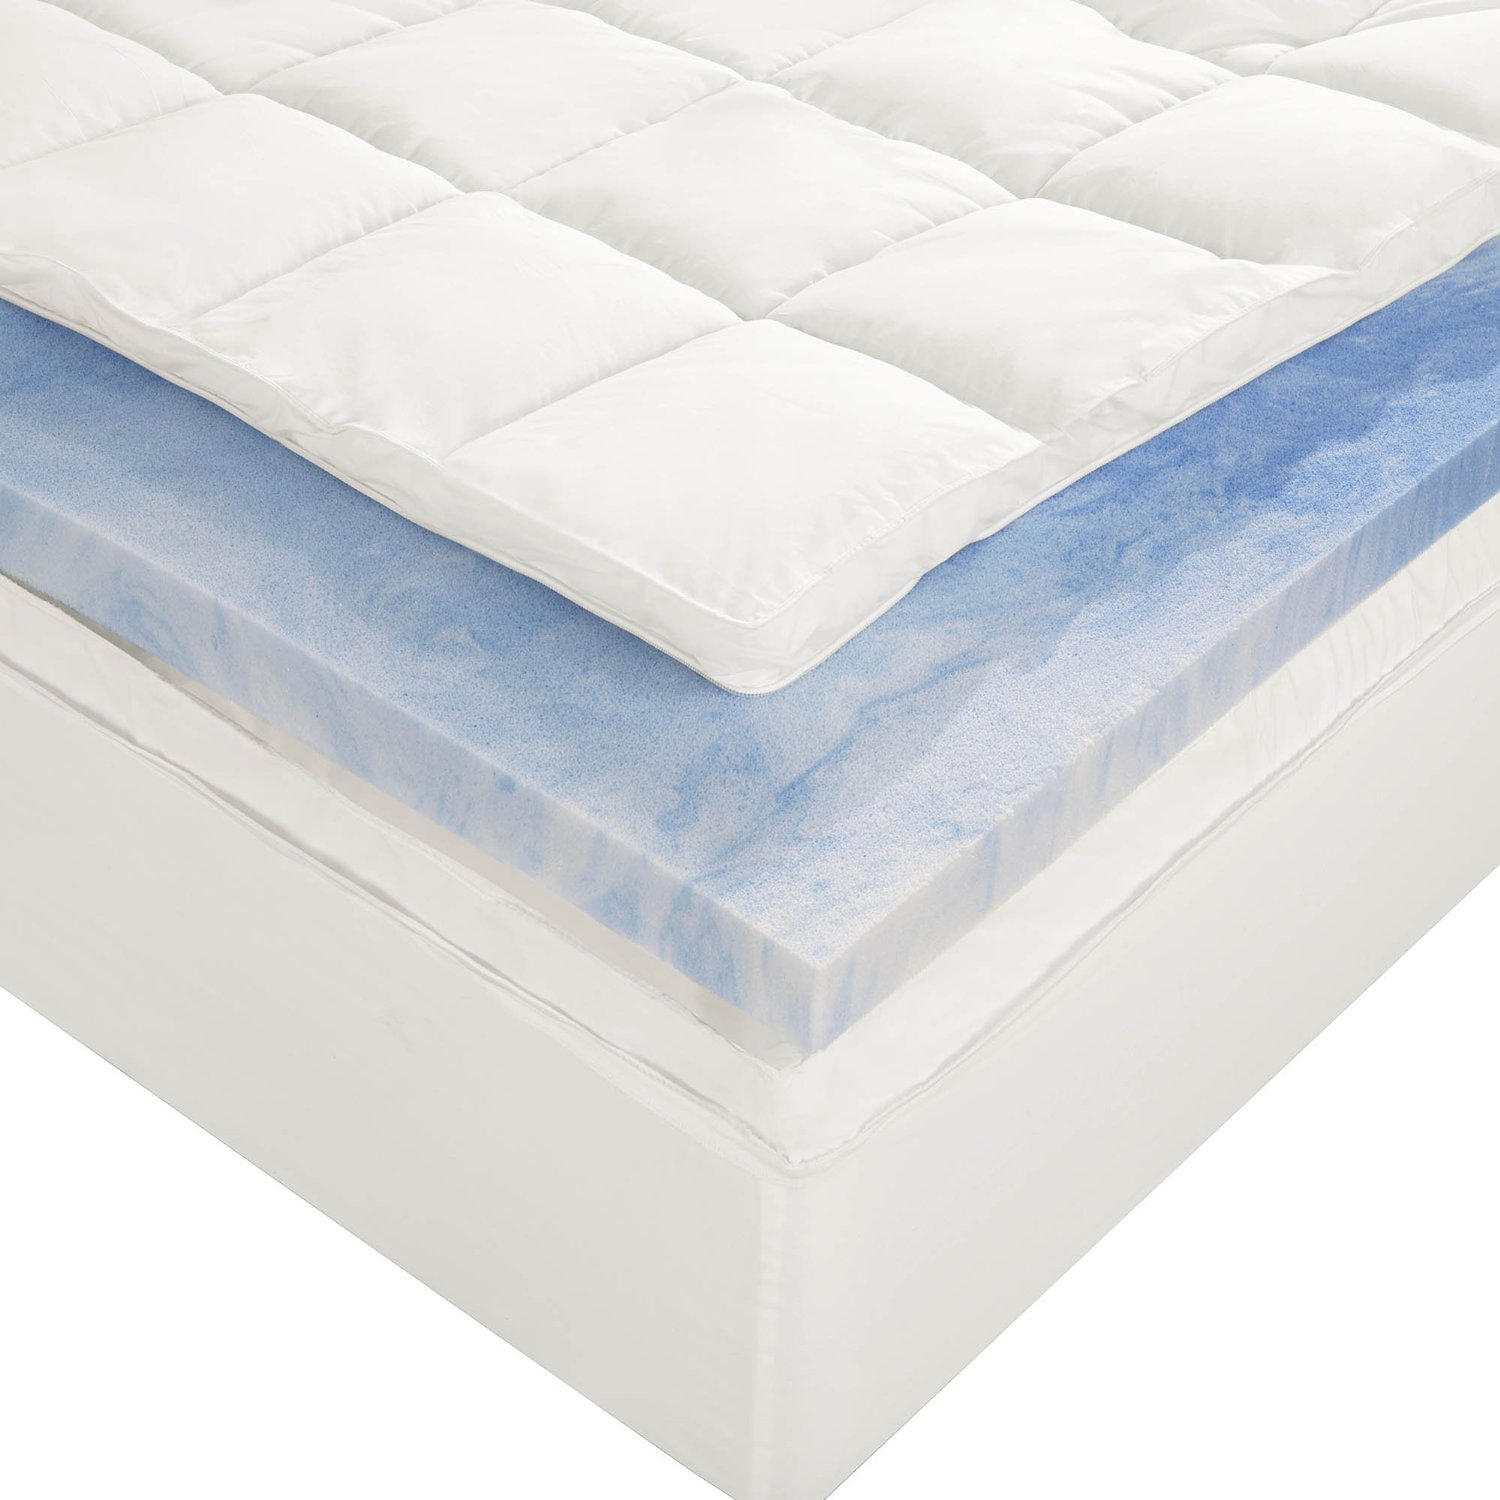 Sleep Innovations 4 Inch Dual Layer Mattress Topper Gel Memory Foam And Plush Fiber 10 Year Limited Warranty Queen Size 181 15